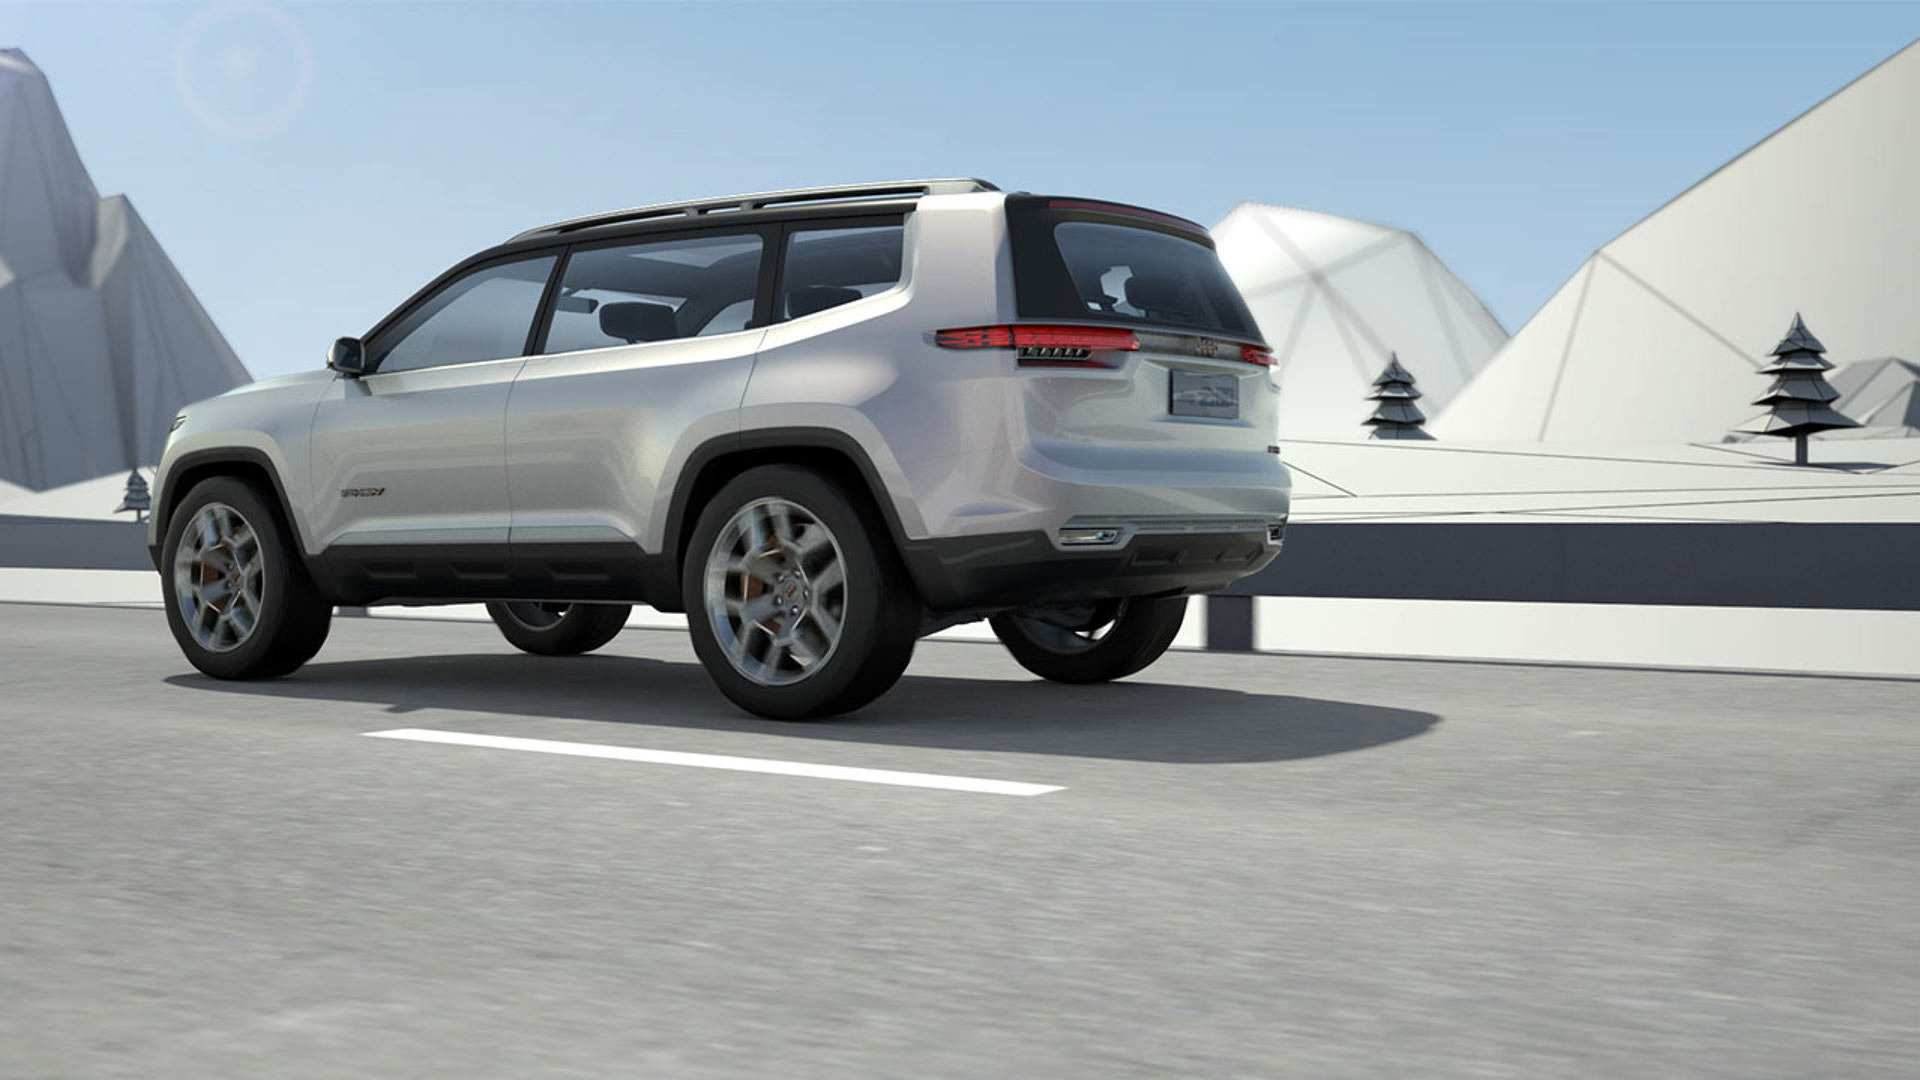 83 The Best 2019 Jeep Grand Wagoneer Redesign And Review